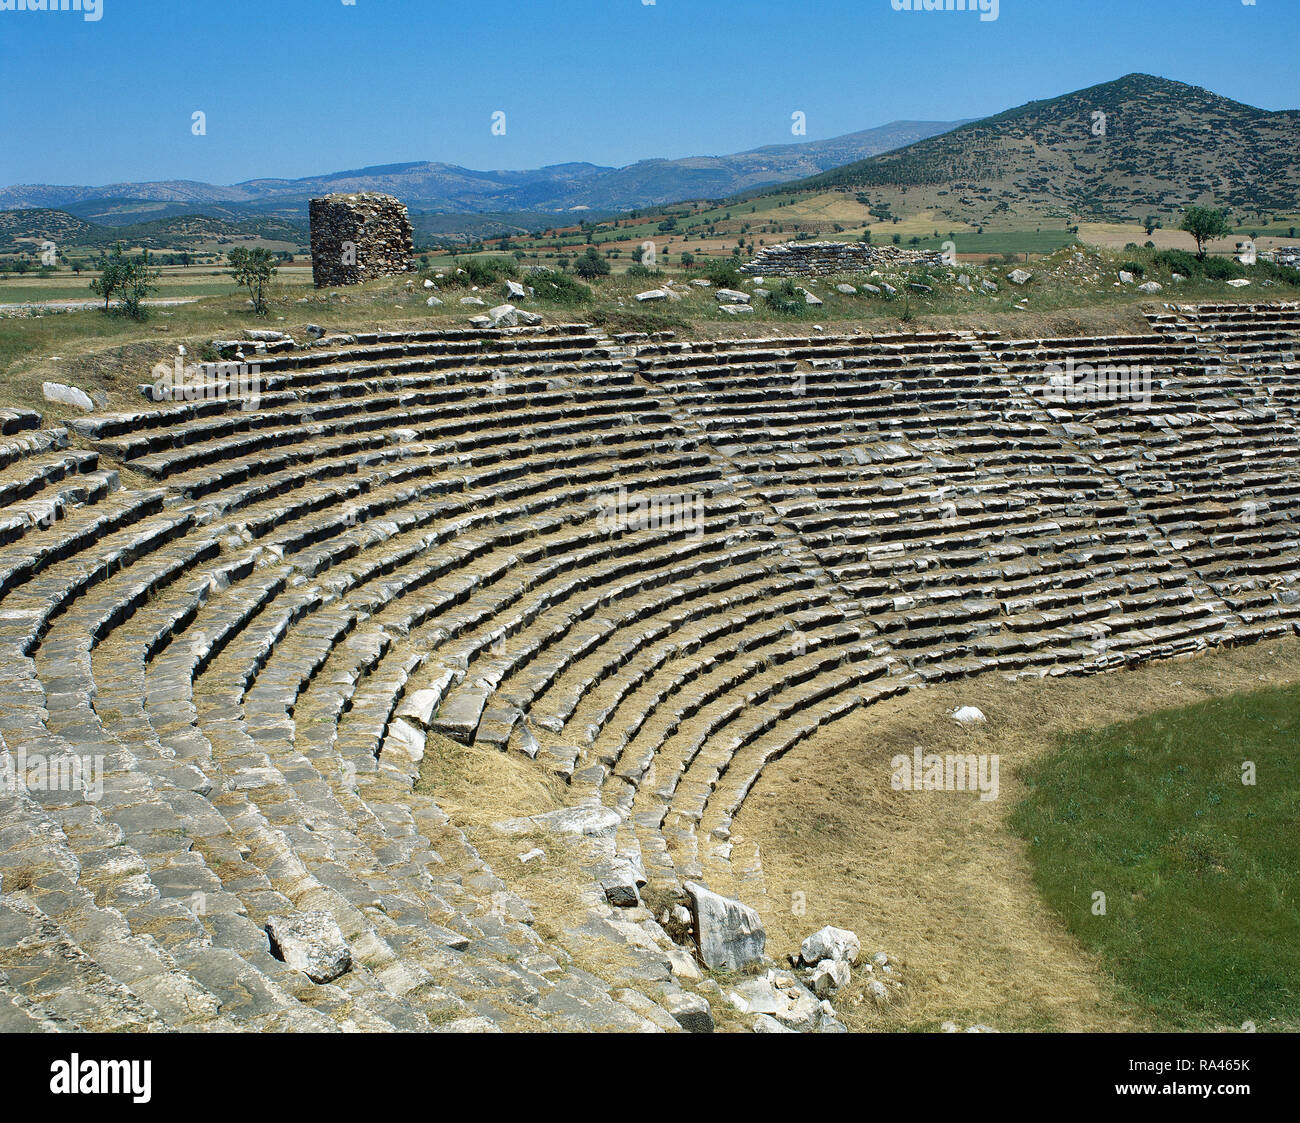 Turkey. Aphrodisias. Ancient Greek Classical city. The Stadium. It was built in the later 1st century AD. Originally designed for athletic contests. Architectural detail of the west end. - Stock Image